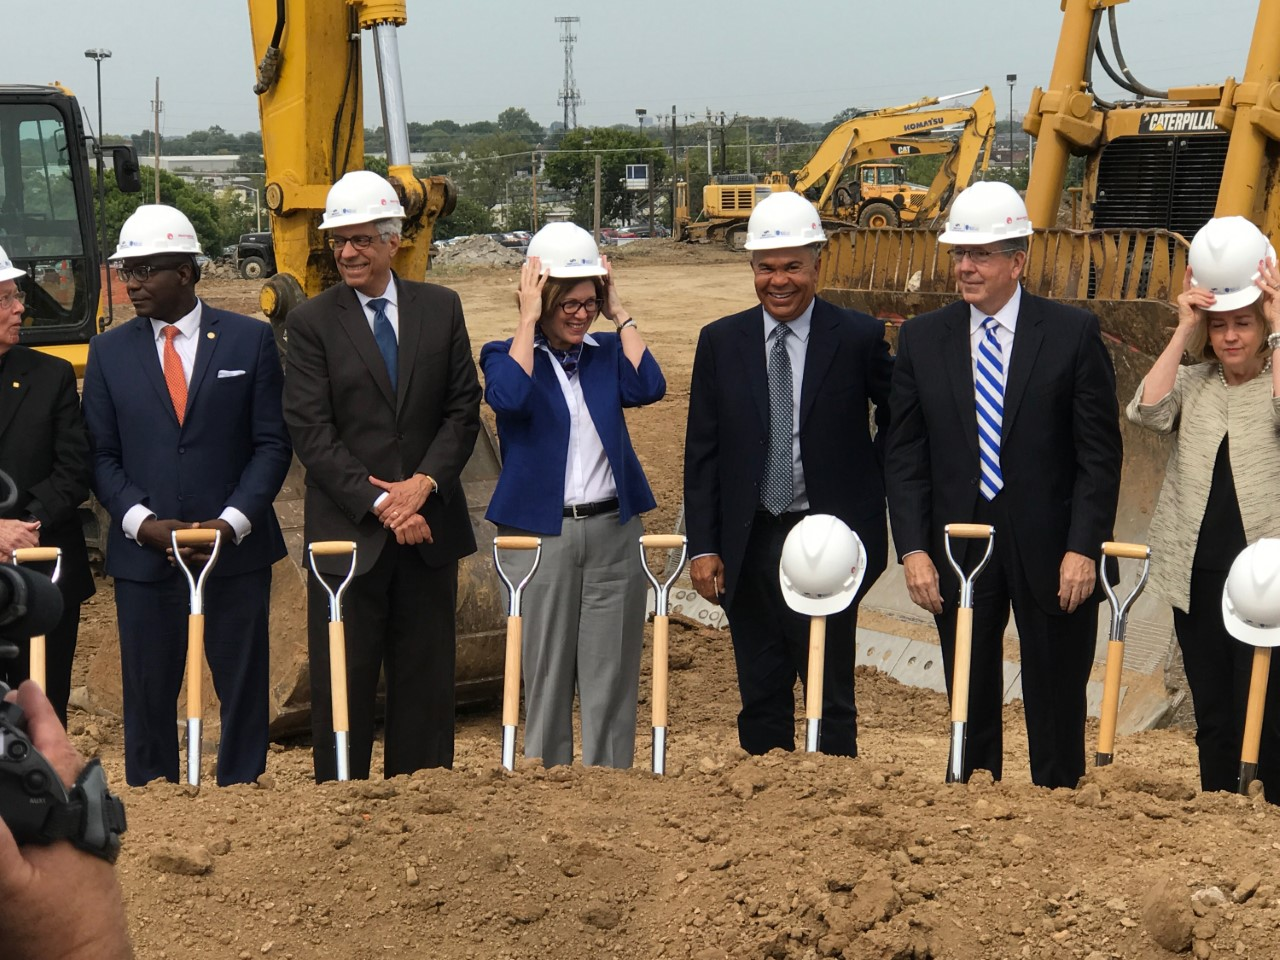 Hospital+stakeholders+celebrate+the+construction+with+ceremonial+scoops+of+dirt.